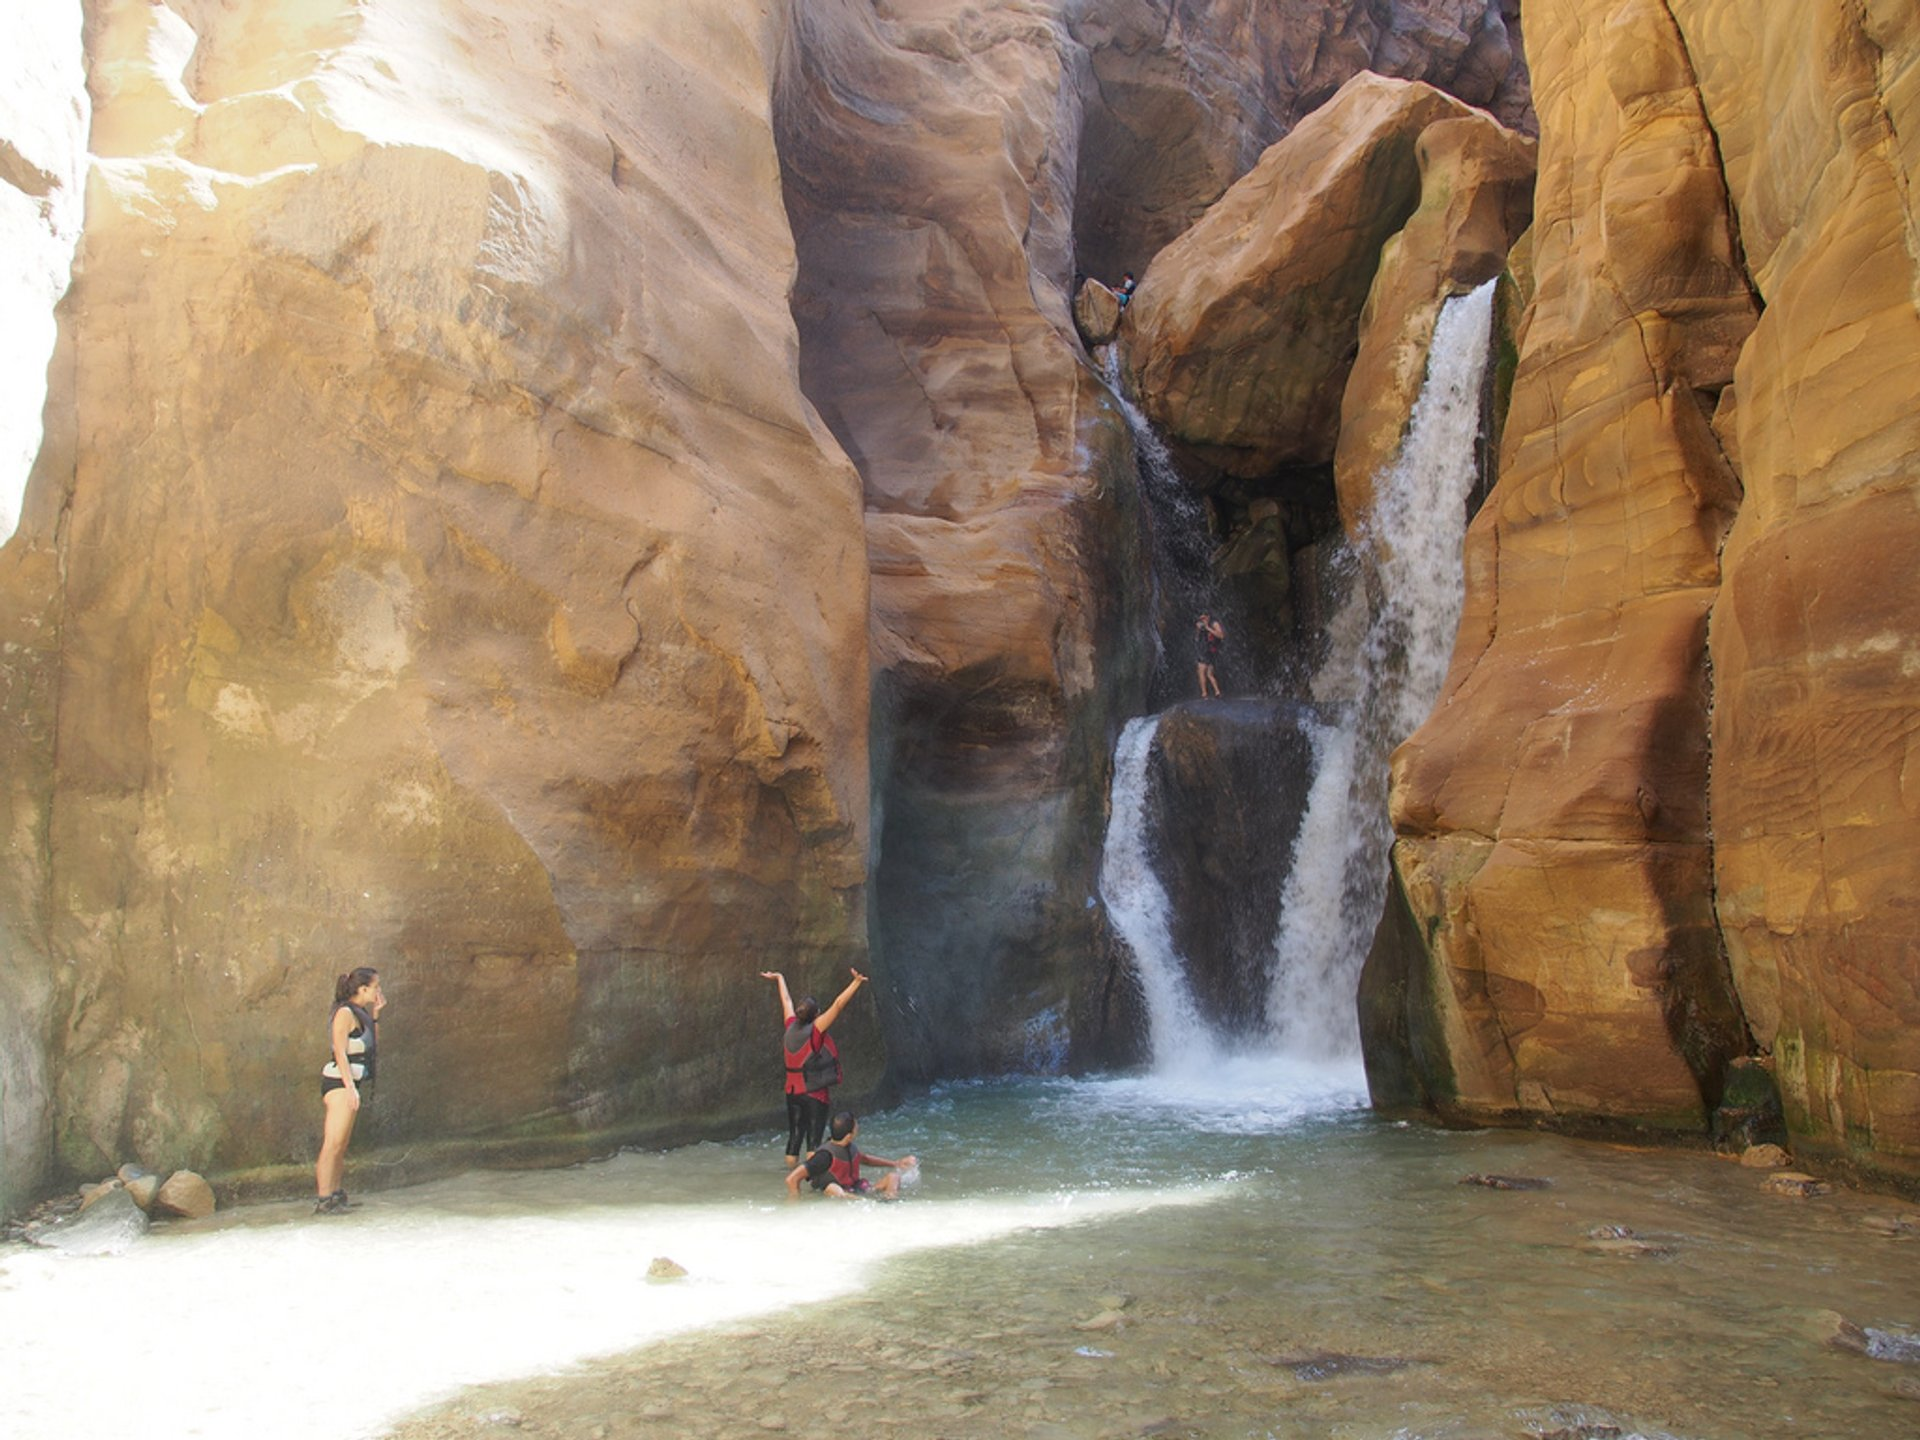 Canyoning in Jordan - Best Season 2019